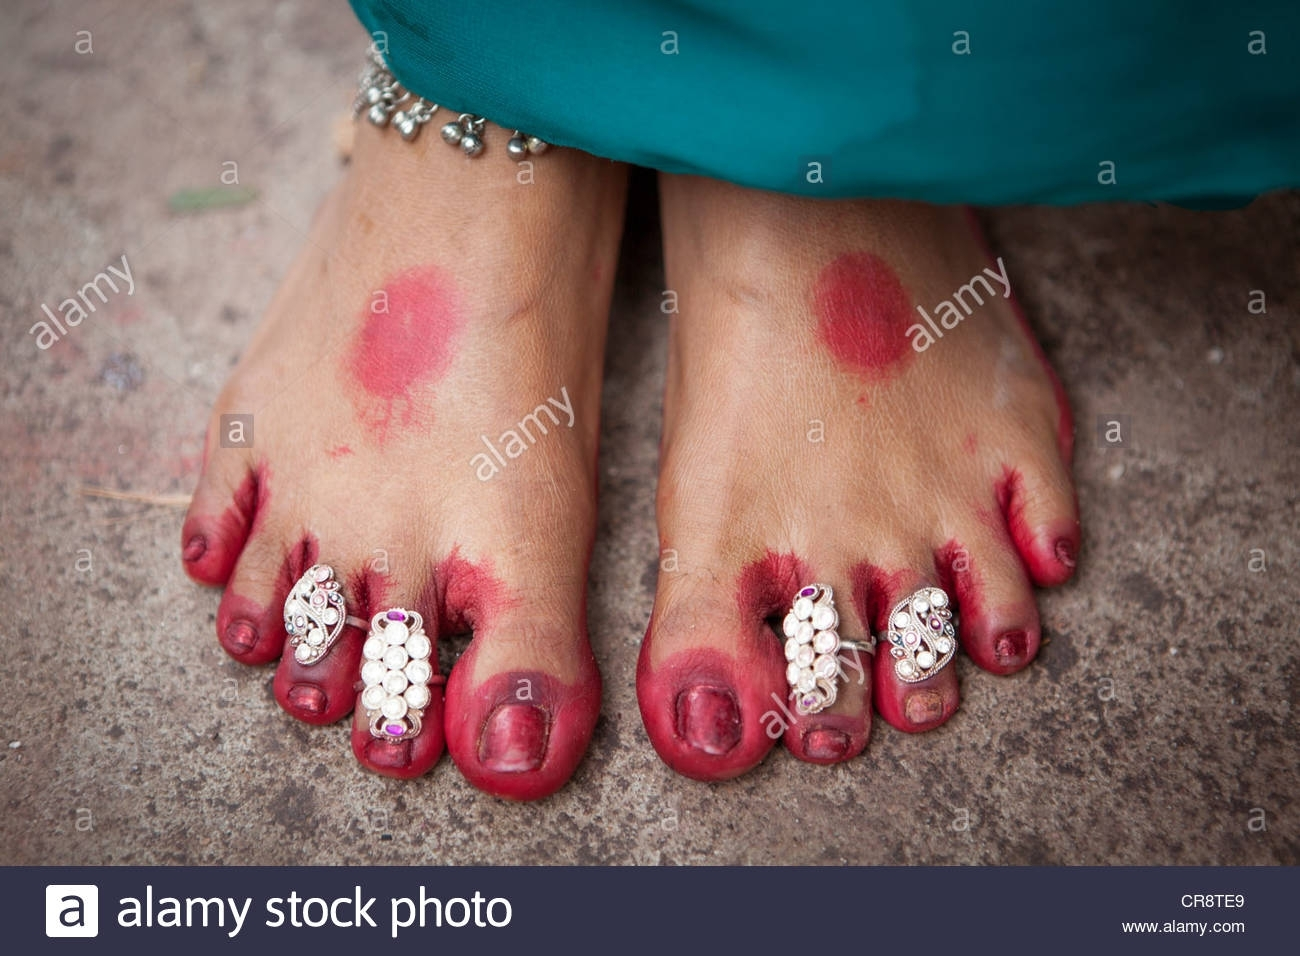 Toe Ring Stock Photos & Toe Ring Stock Images – Alamy For Current Indian Toe Rings (View 4 of 15)